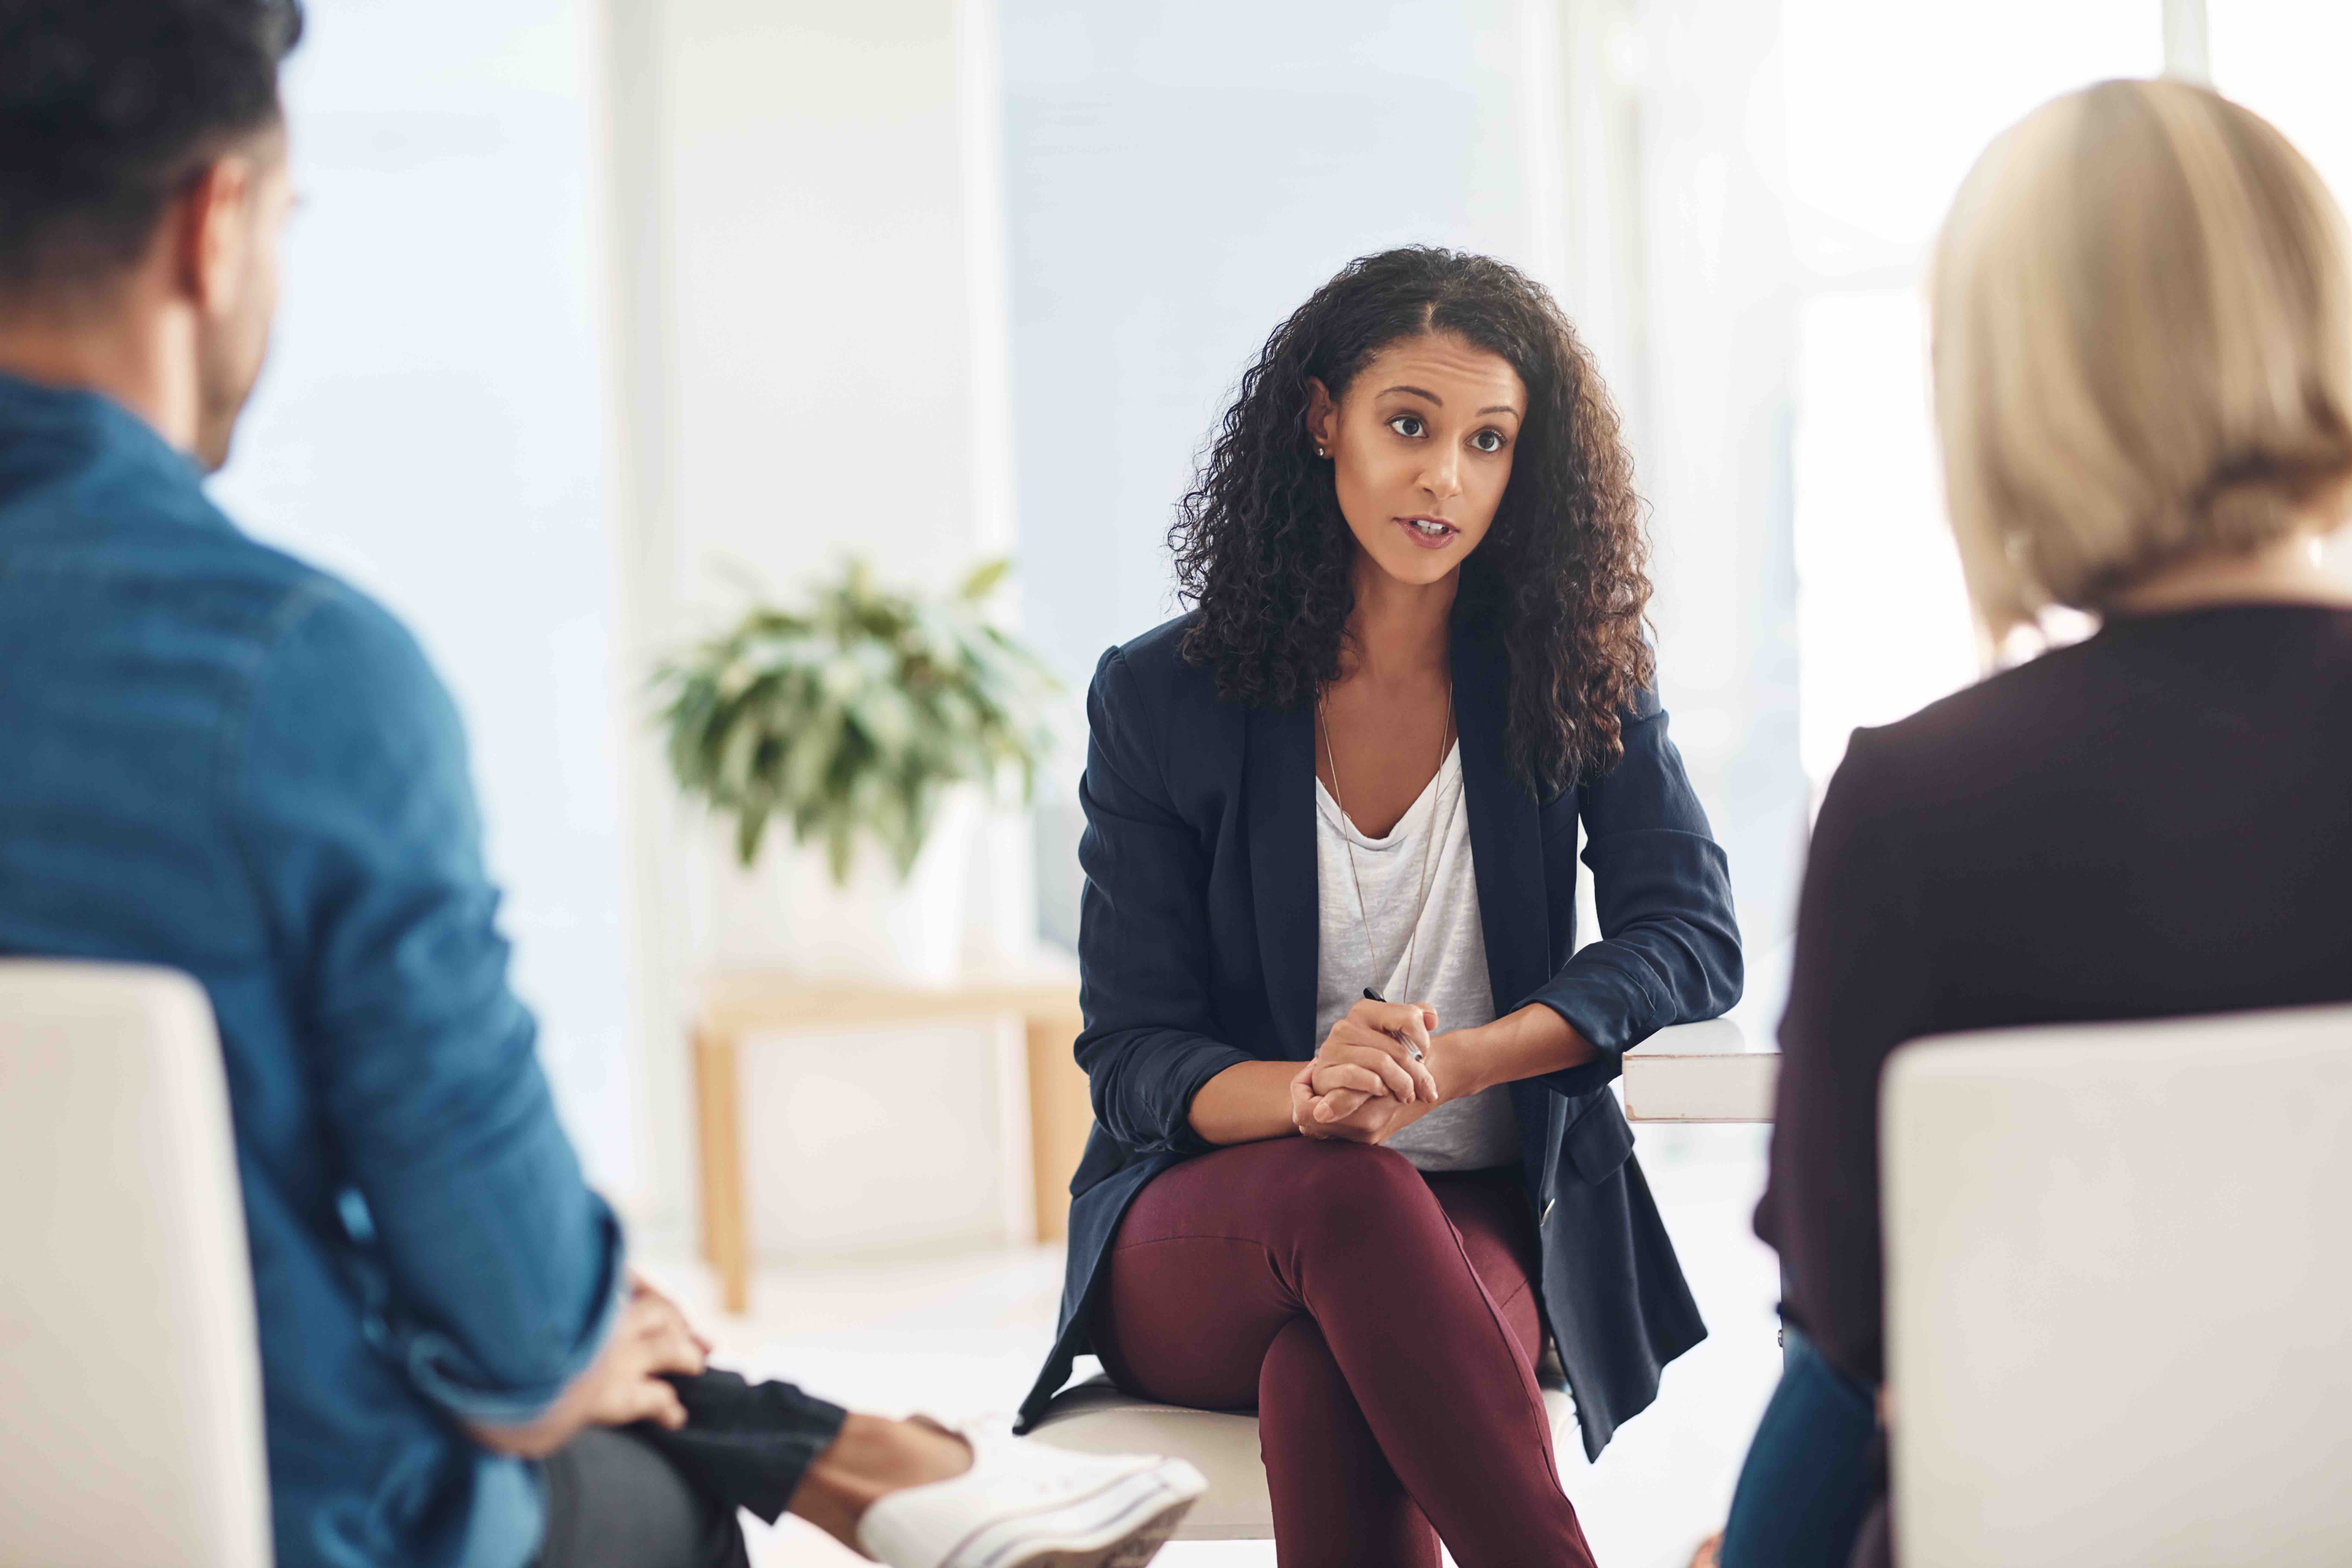 How to Find a Therapist and More Tips for Latinos Starting Their Mental Health Journey